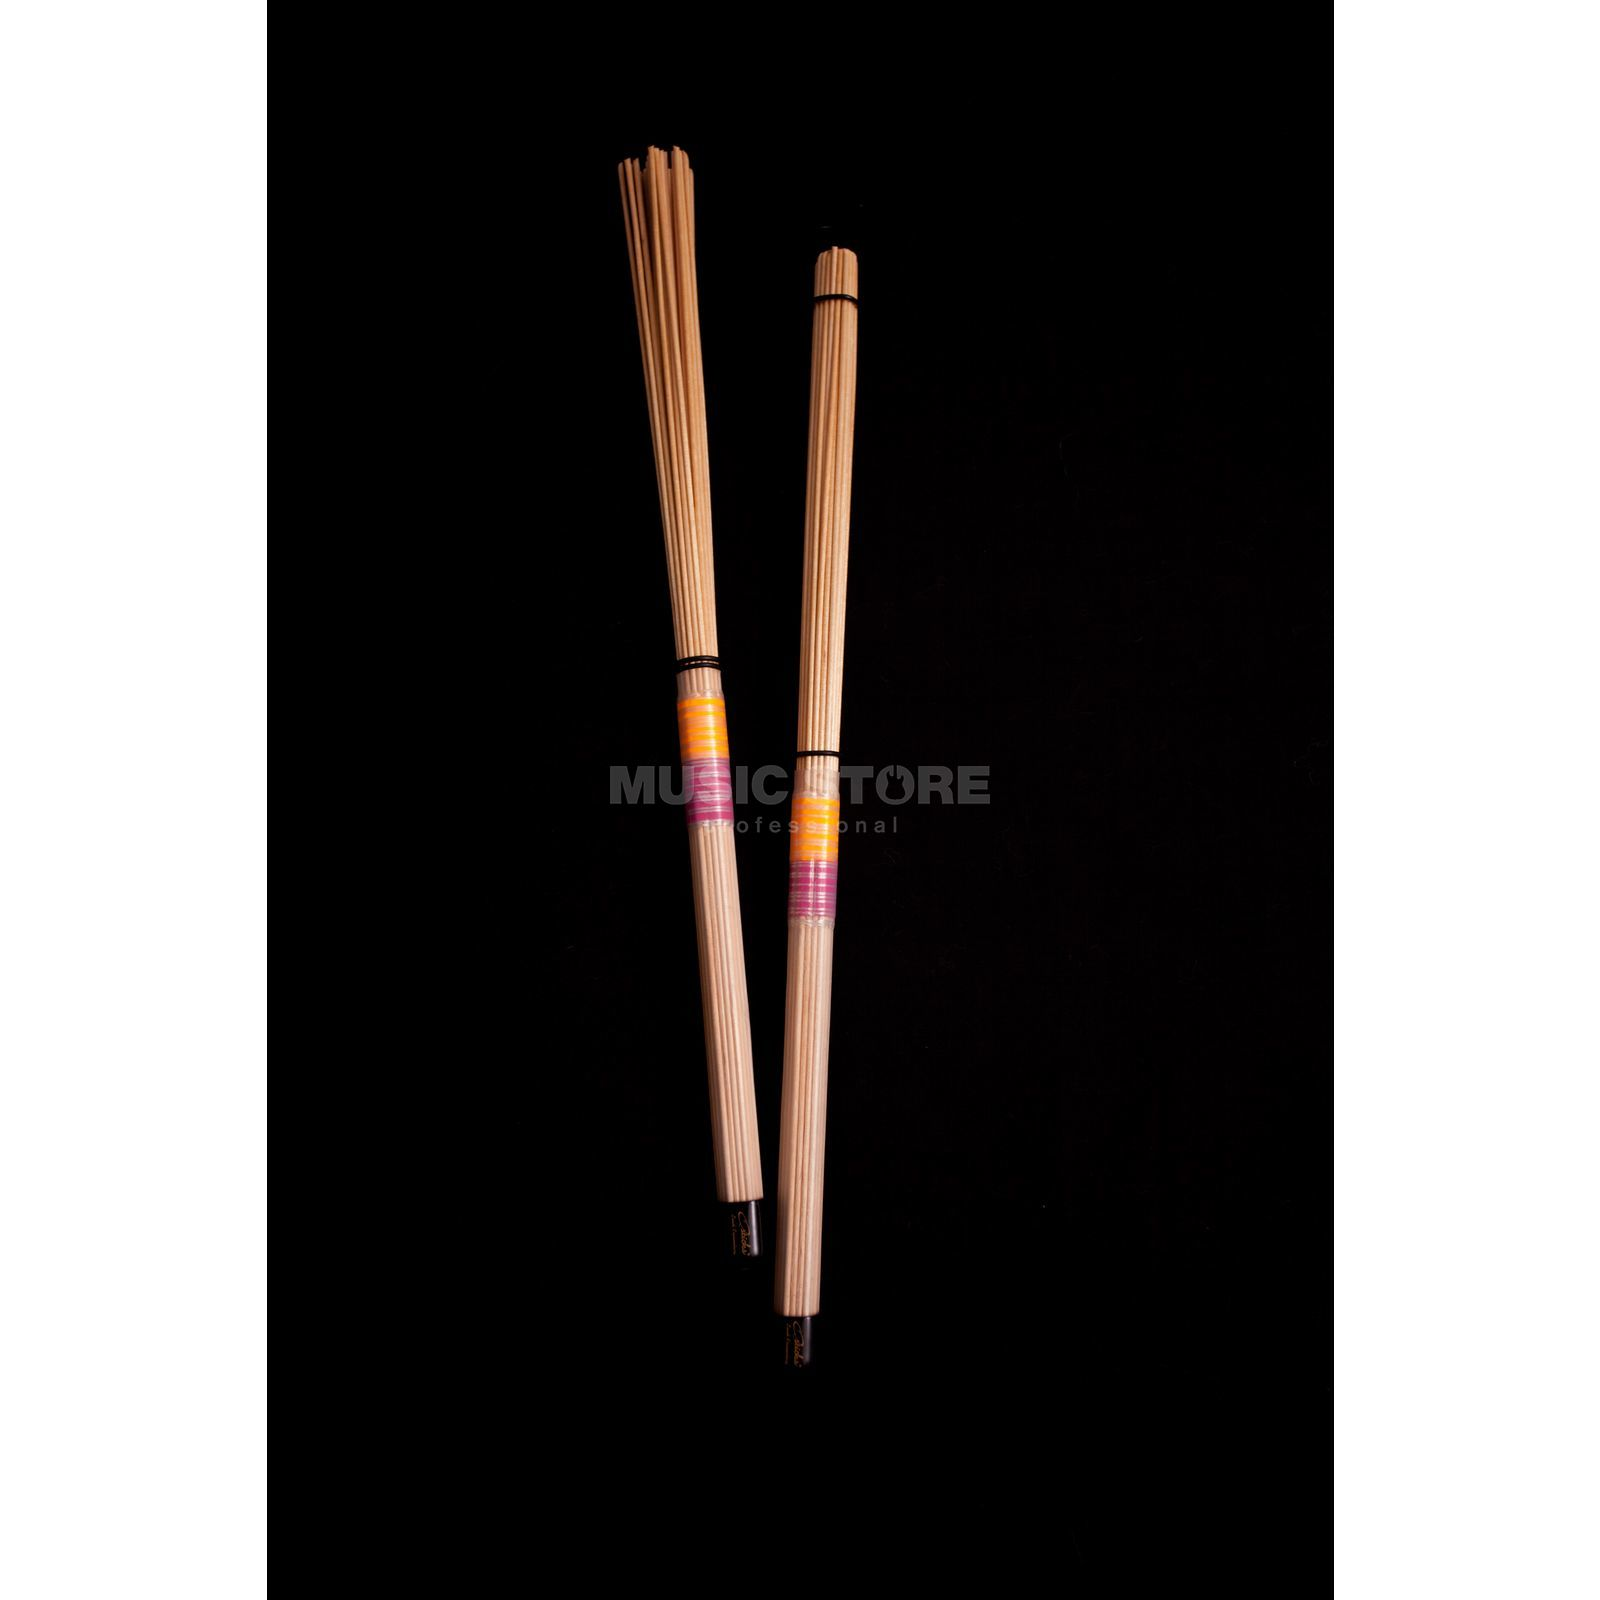 QPercussion QSticks/Rods Conversation 2B, Natural Produktbild